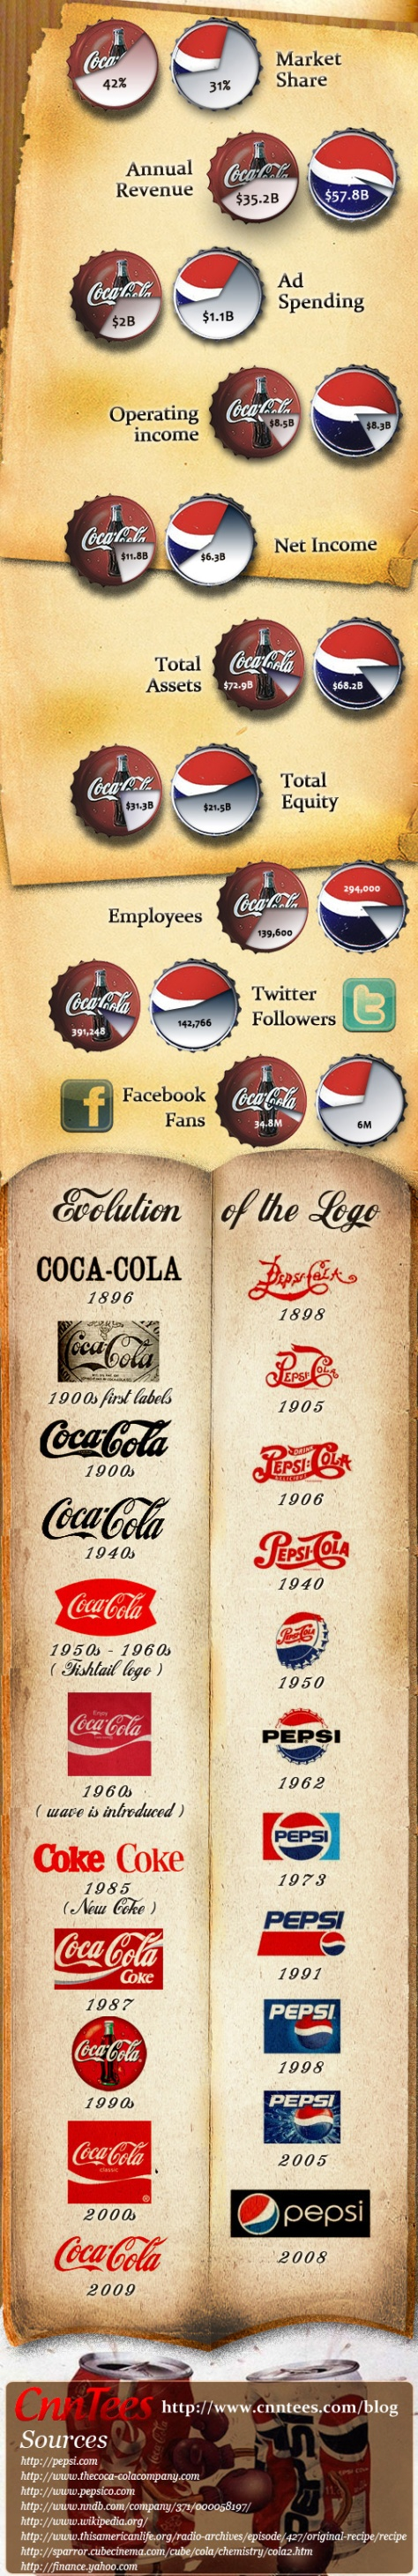 Coke vs Pepsi Interactive Infographic